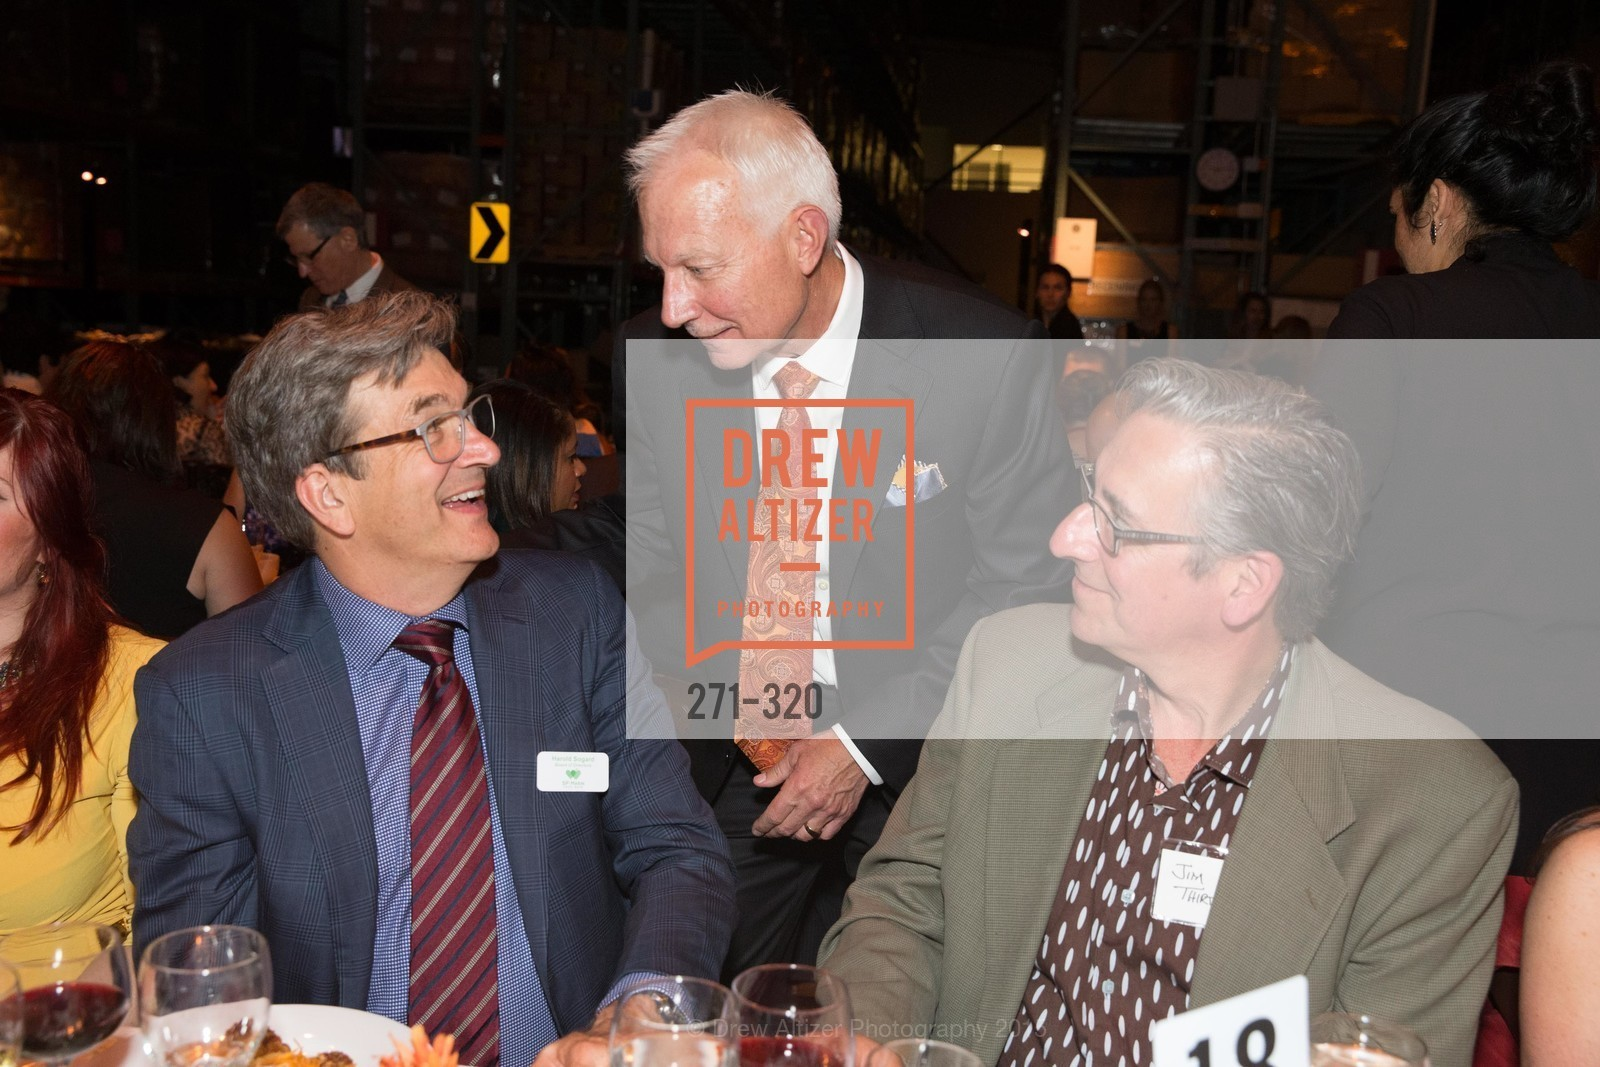 Harold Sogard, Paul Ash, Jim Thirtyacre, SF - Marin Food Bank Presents ONE BIG TABLE, SF- Marin Food Bank. 900 Pennsylvania Ave, September 26th, 2015,Drew Altizer, Drew Altizer Photography, full-service agency, private events, San Francisco photographer, photographer california